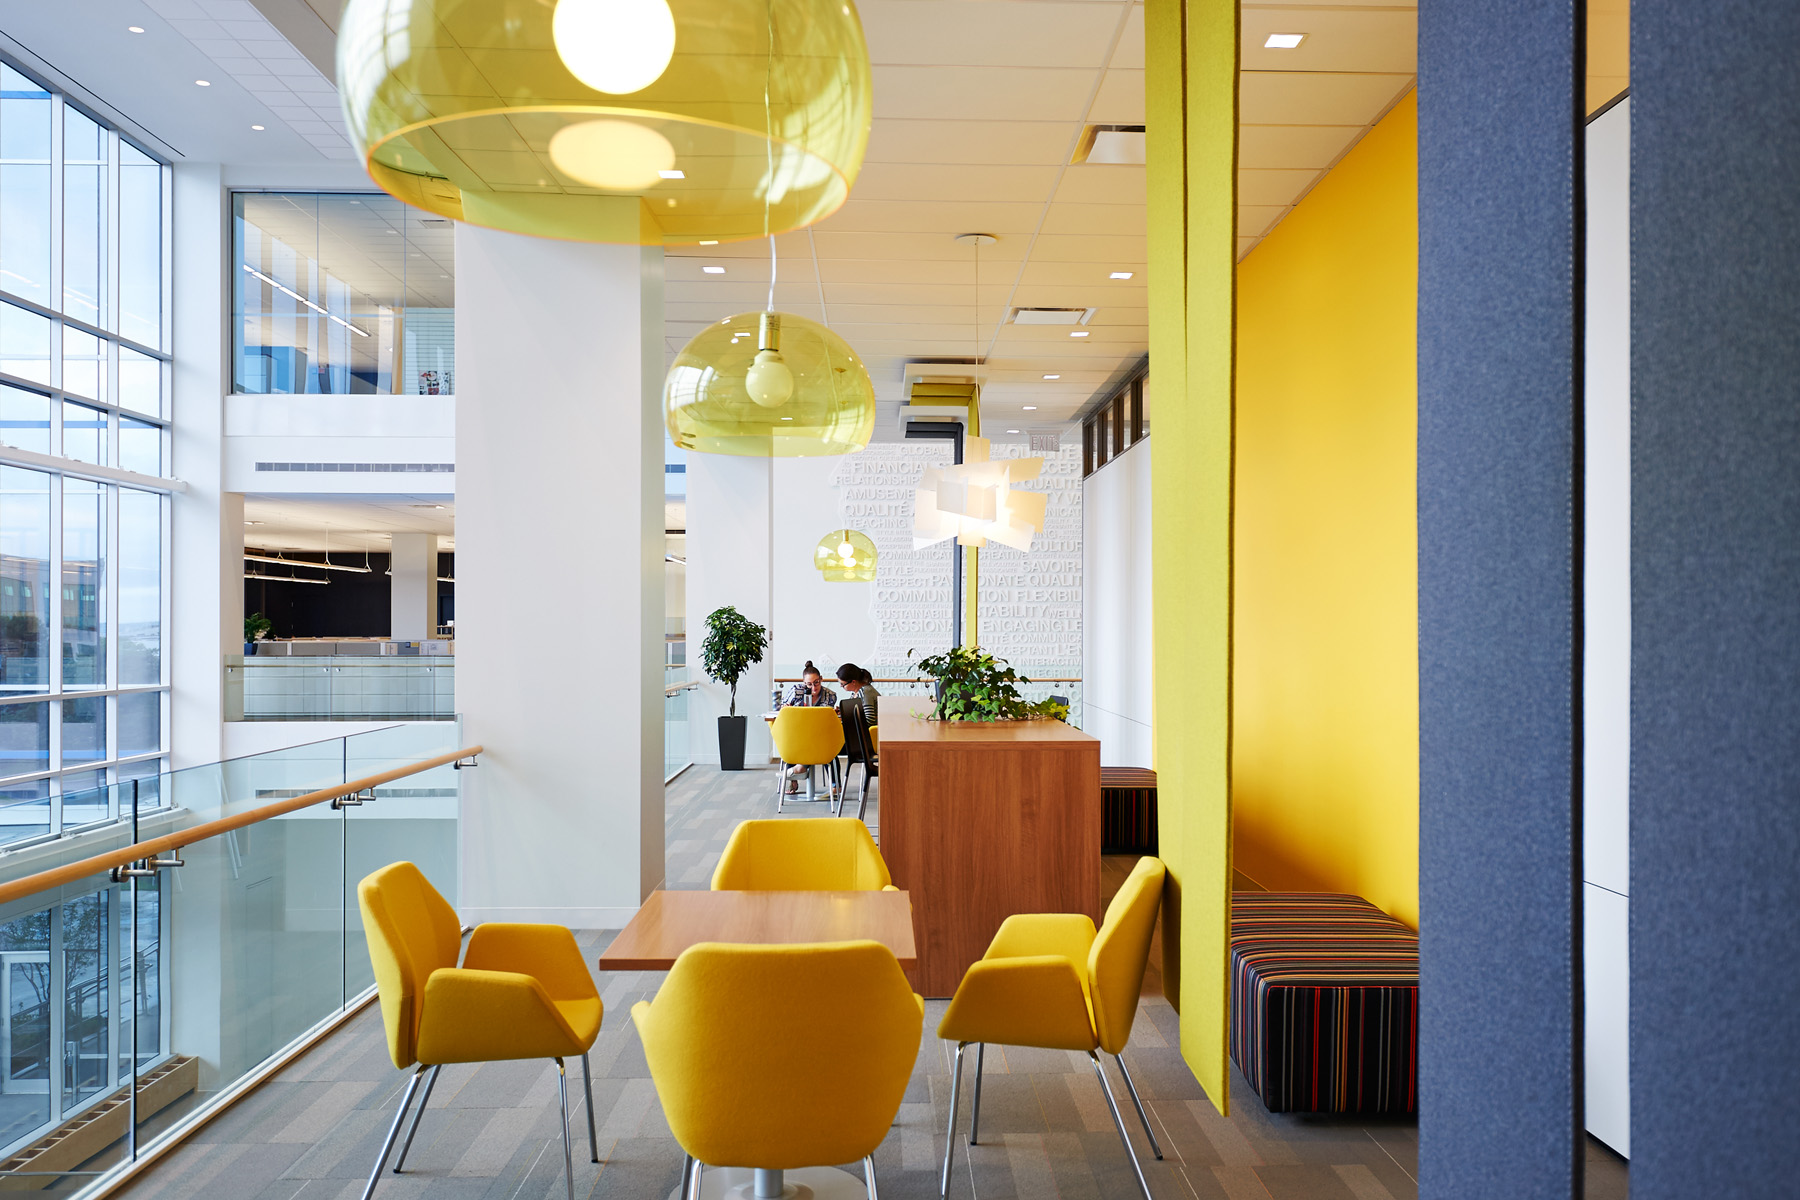 TJX seating area with yellow chairs, yellow and white walls, and yellow glass dome light fixtures